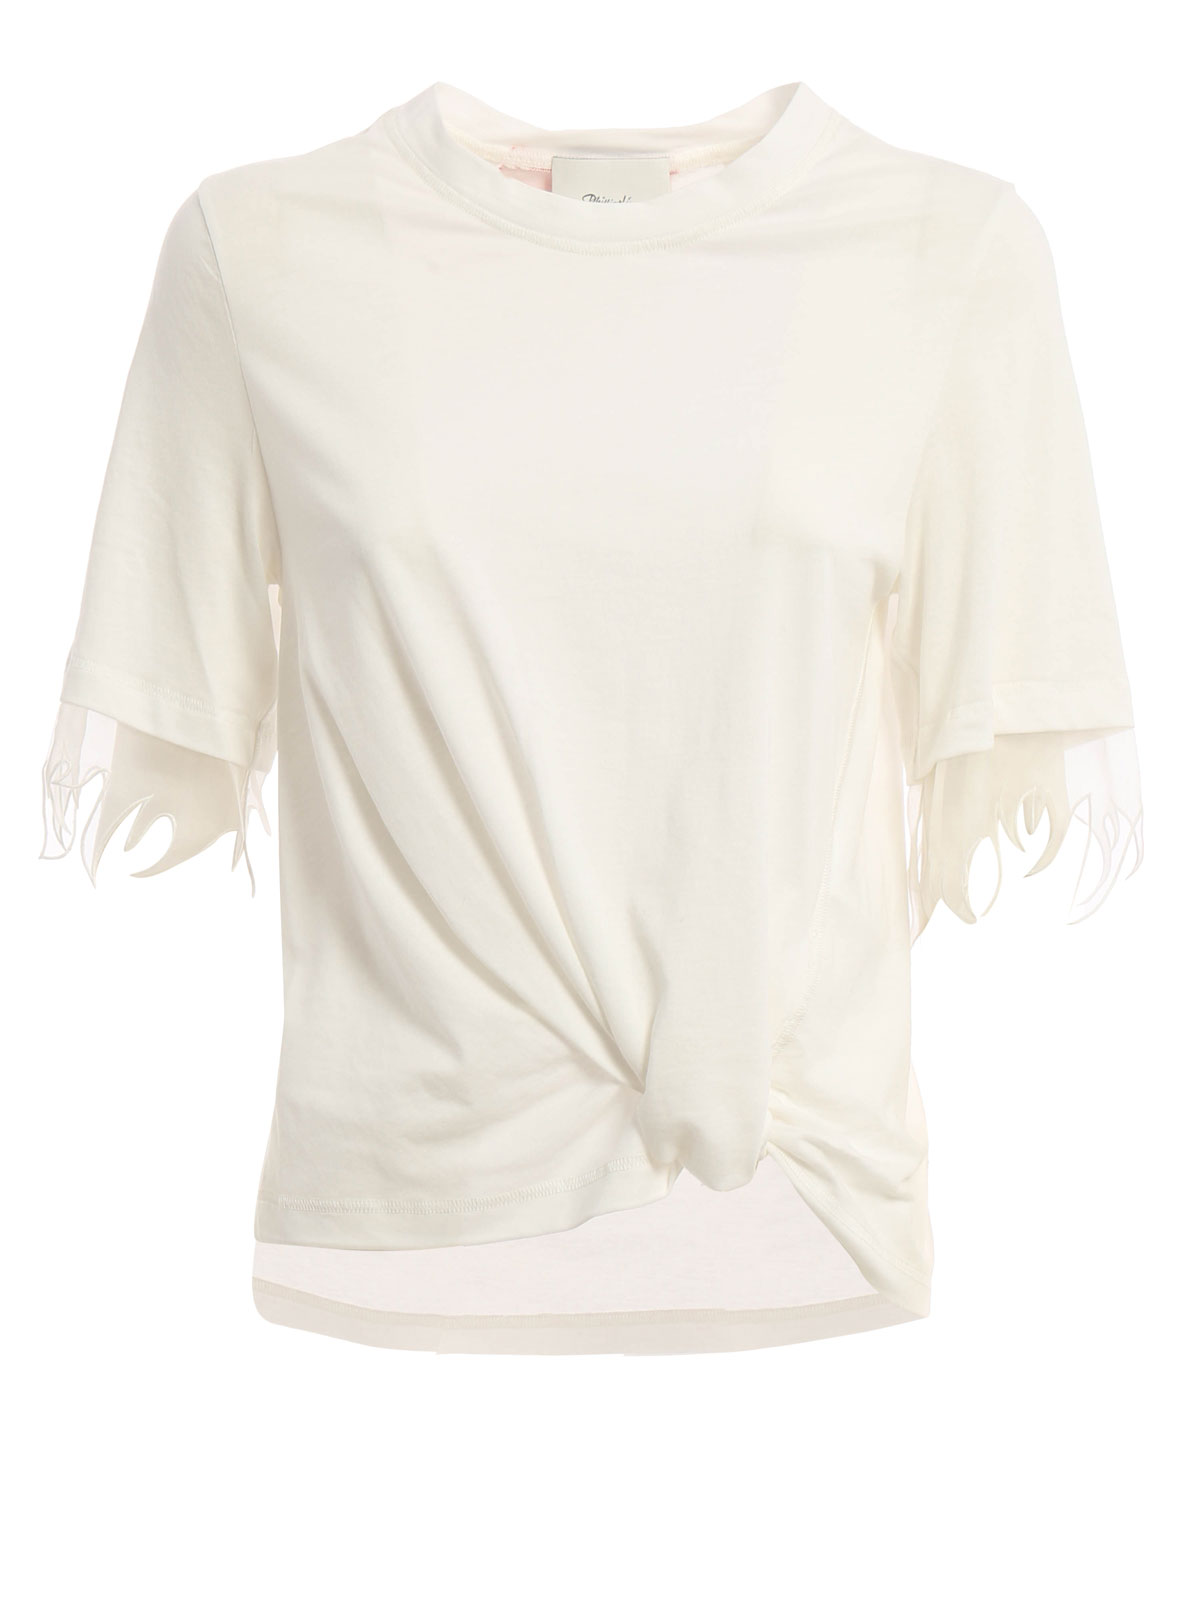 Silk sleeve eclectic cotton t shirt by phillip lim t for Cotton silk tee shirts